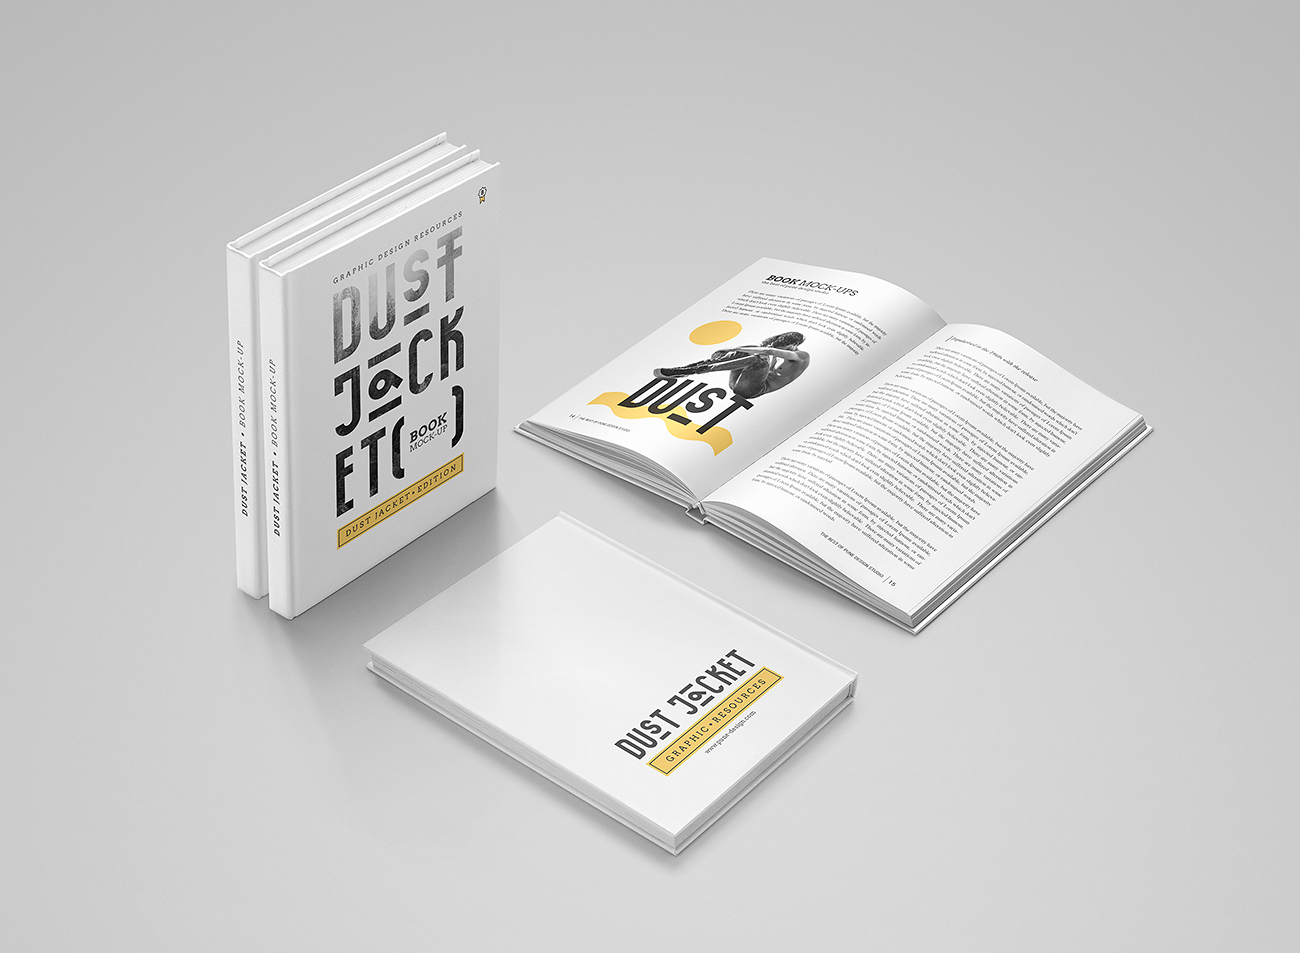 Book-mockup-dust-jacket-011